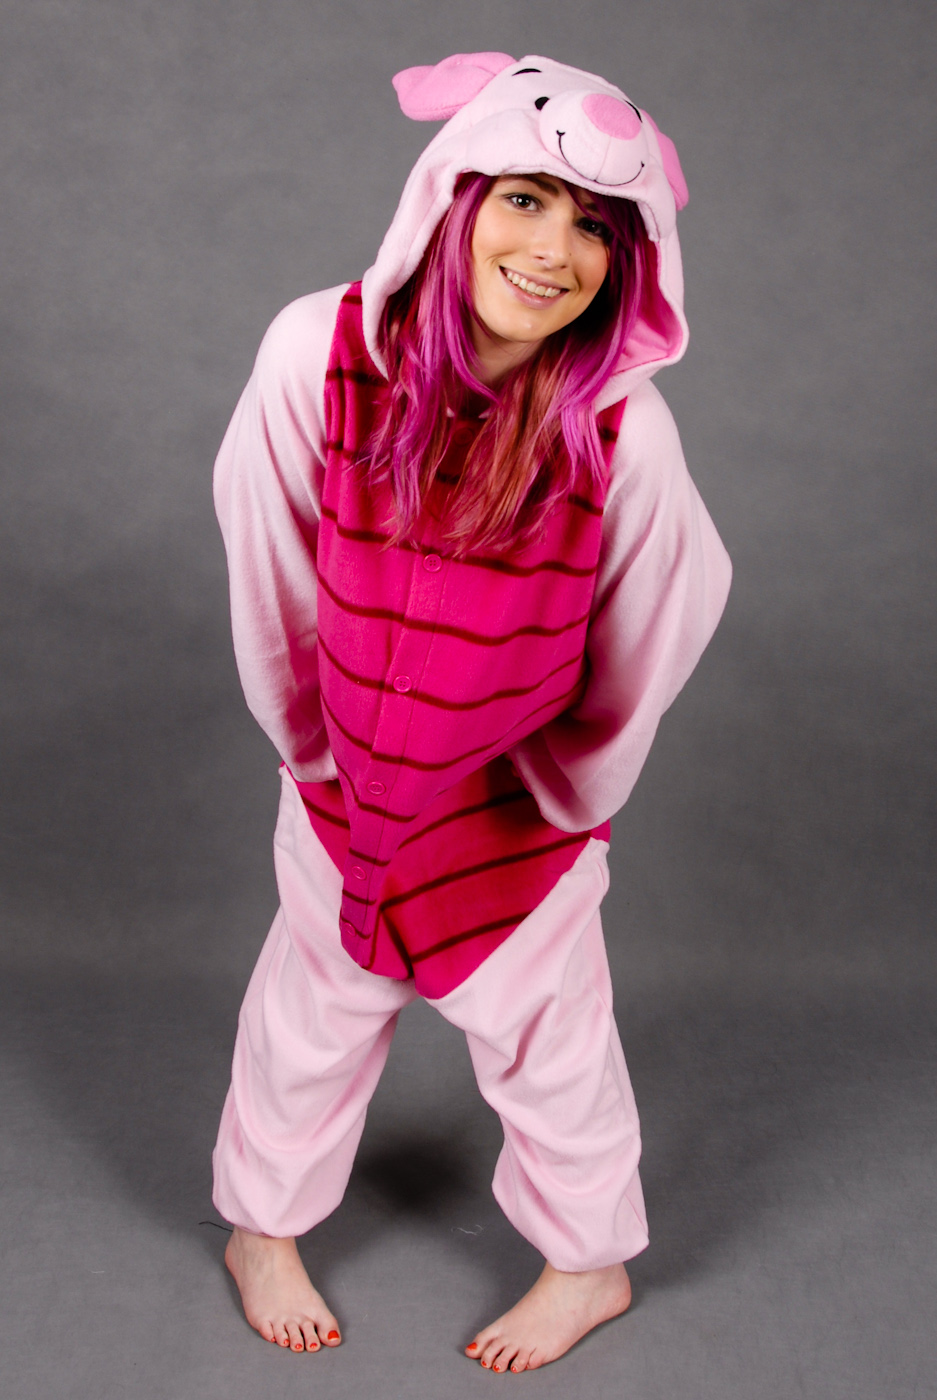 c3be0dce28c2 Piglet Costumes (for Men